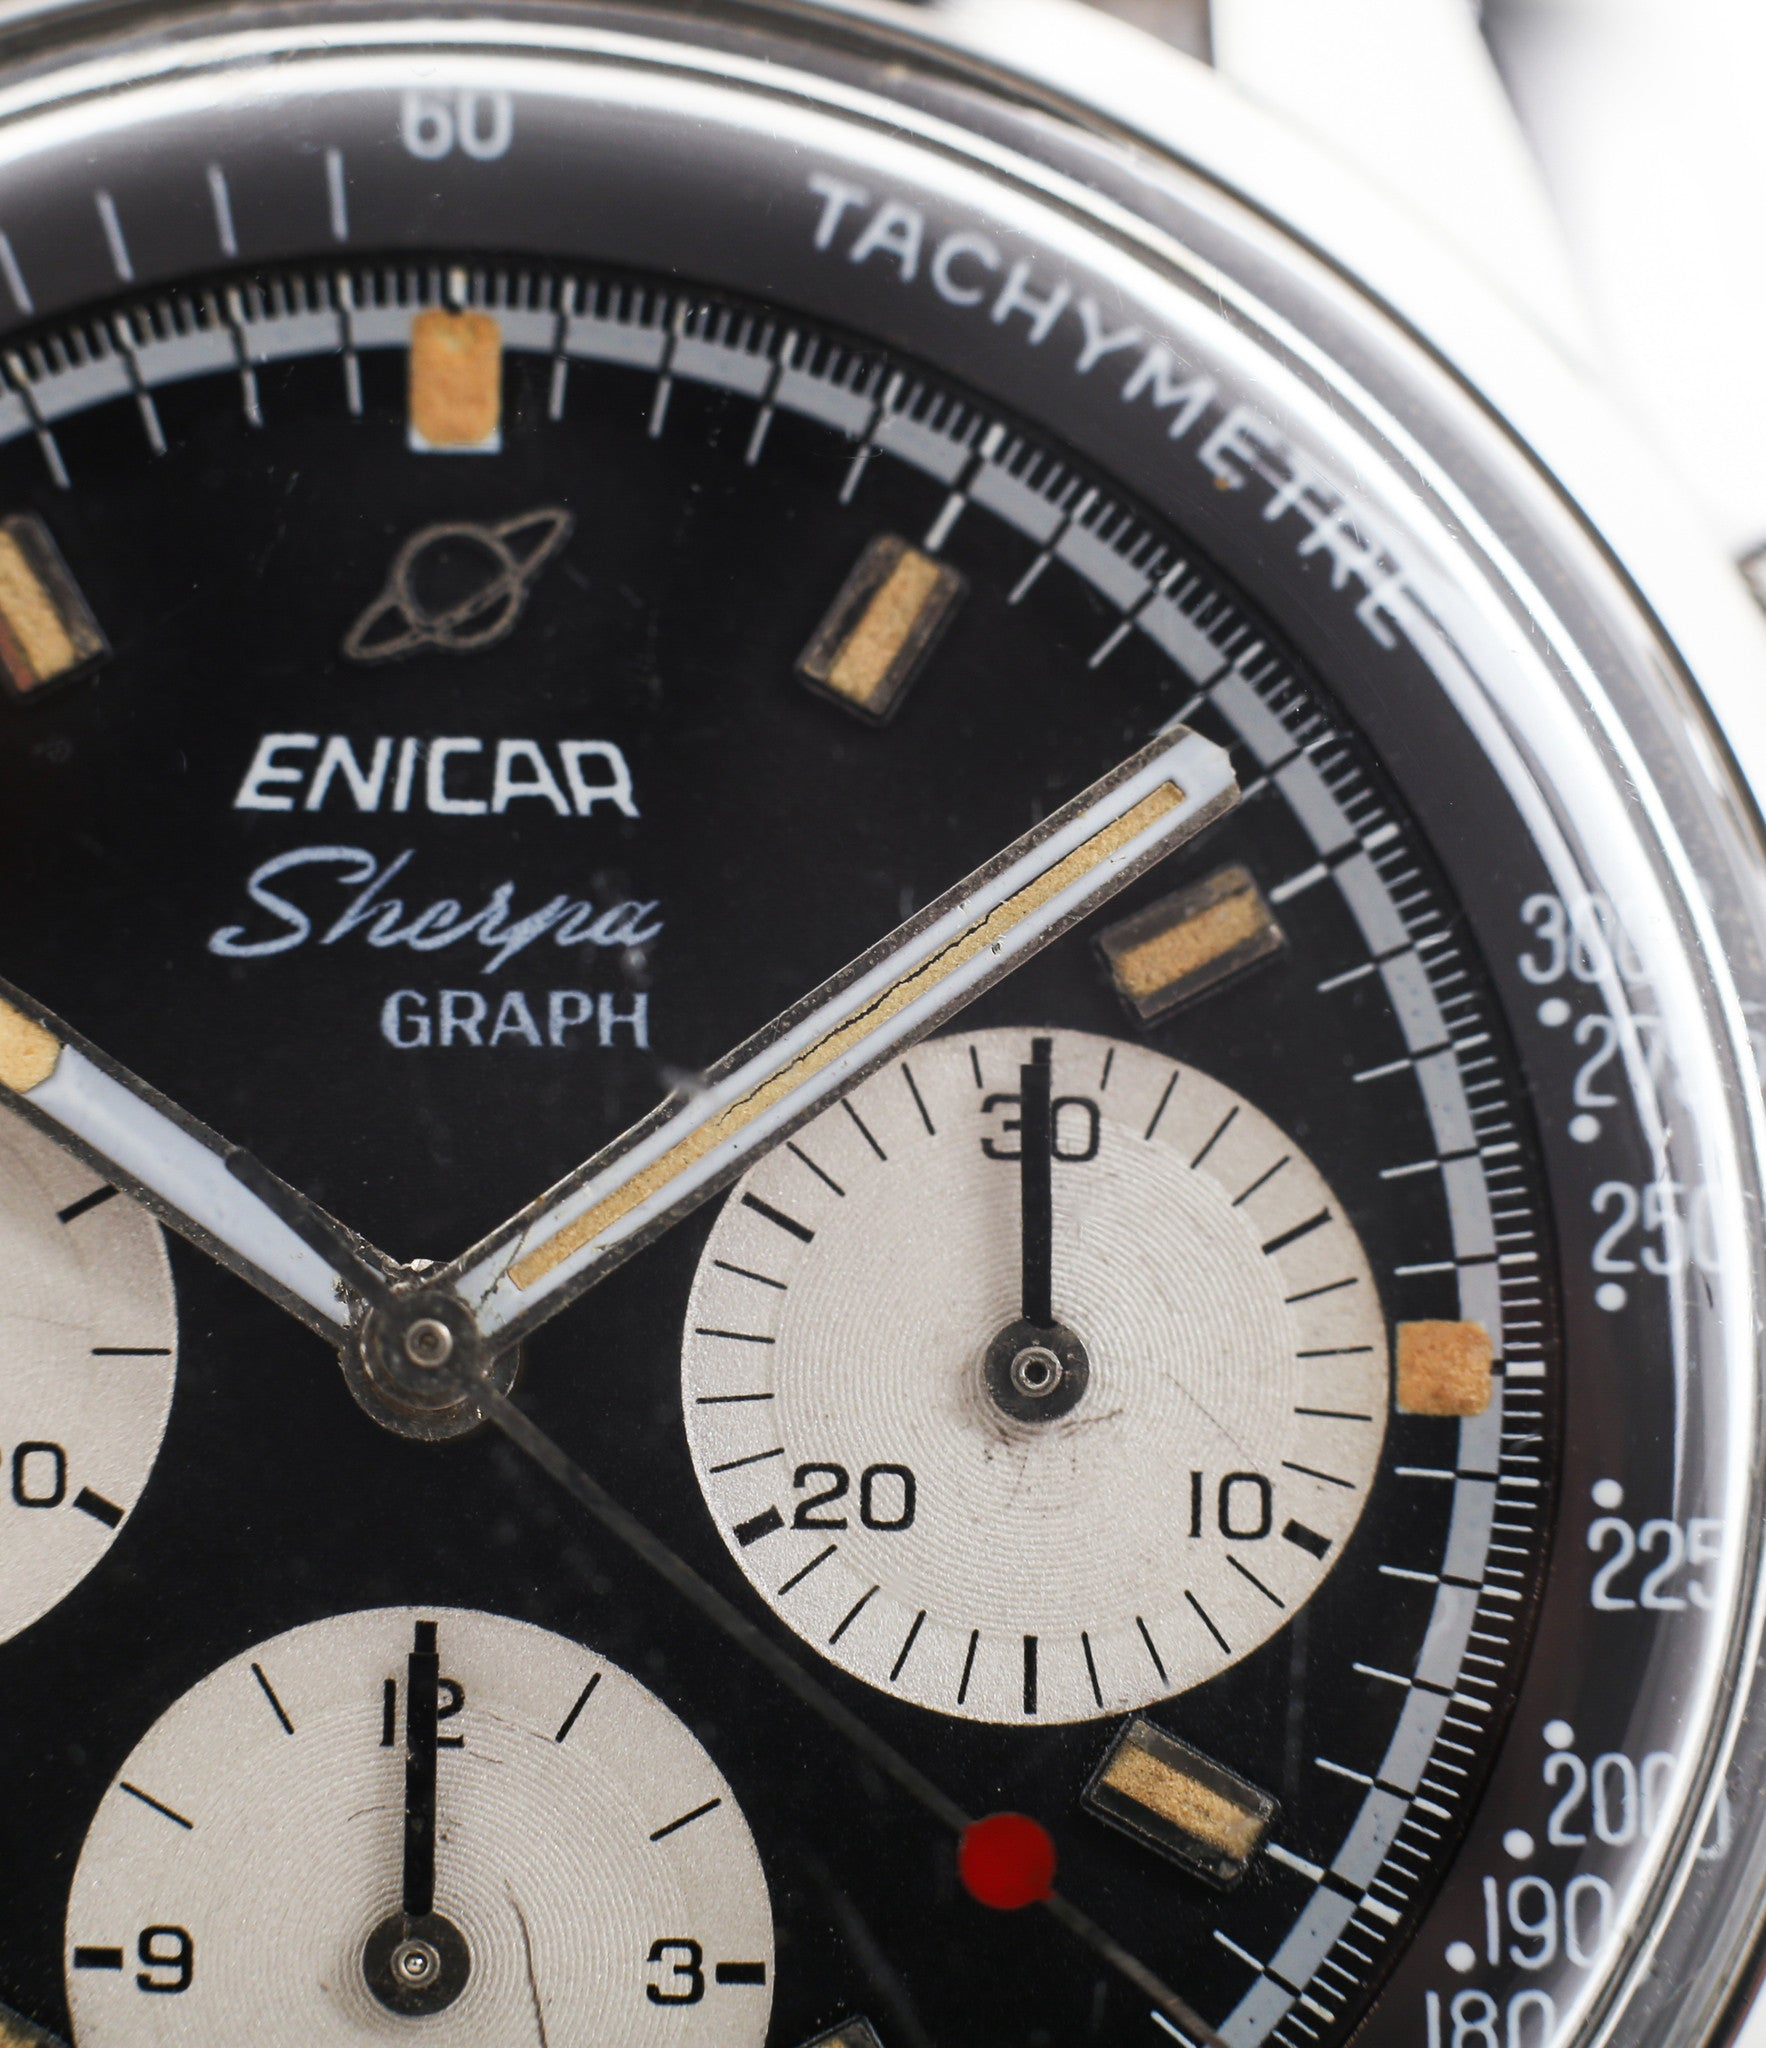 rare dial buy vintage Enicar Sherpha Chronograph 300 Ref. 1962 steel Valjoux 72 manual-winding rare racing watch at WATCH XCHNAGE London with tacyhmeter scale